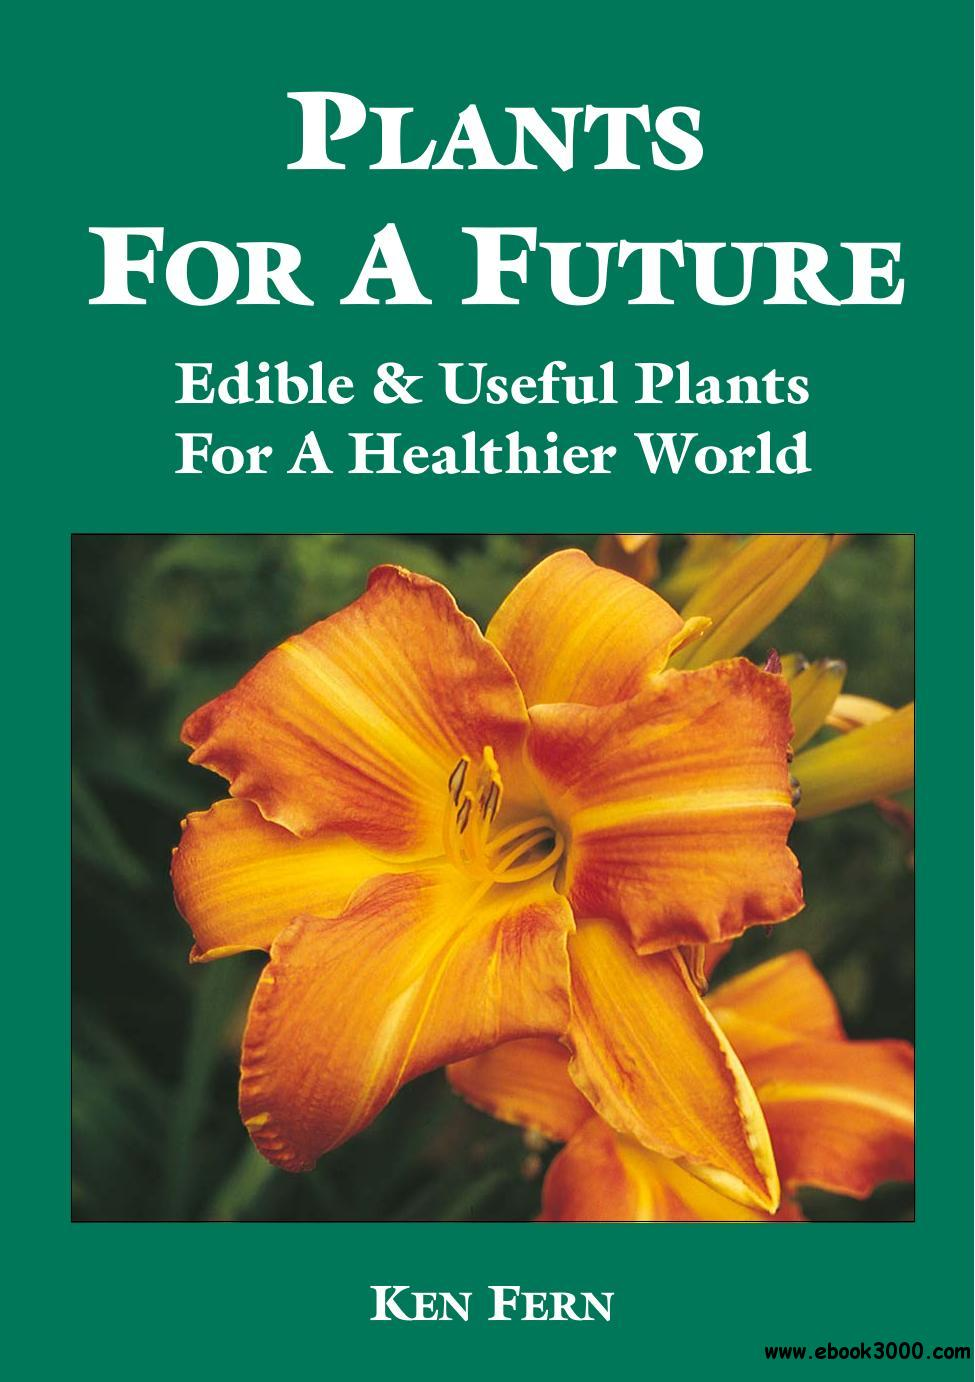 Plants for a Future: Edible & Useful Plants for a Healthier World, 2nd Edition